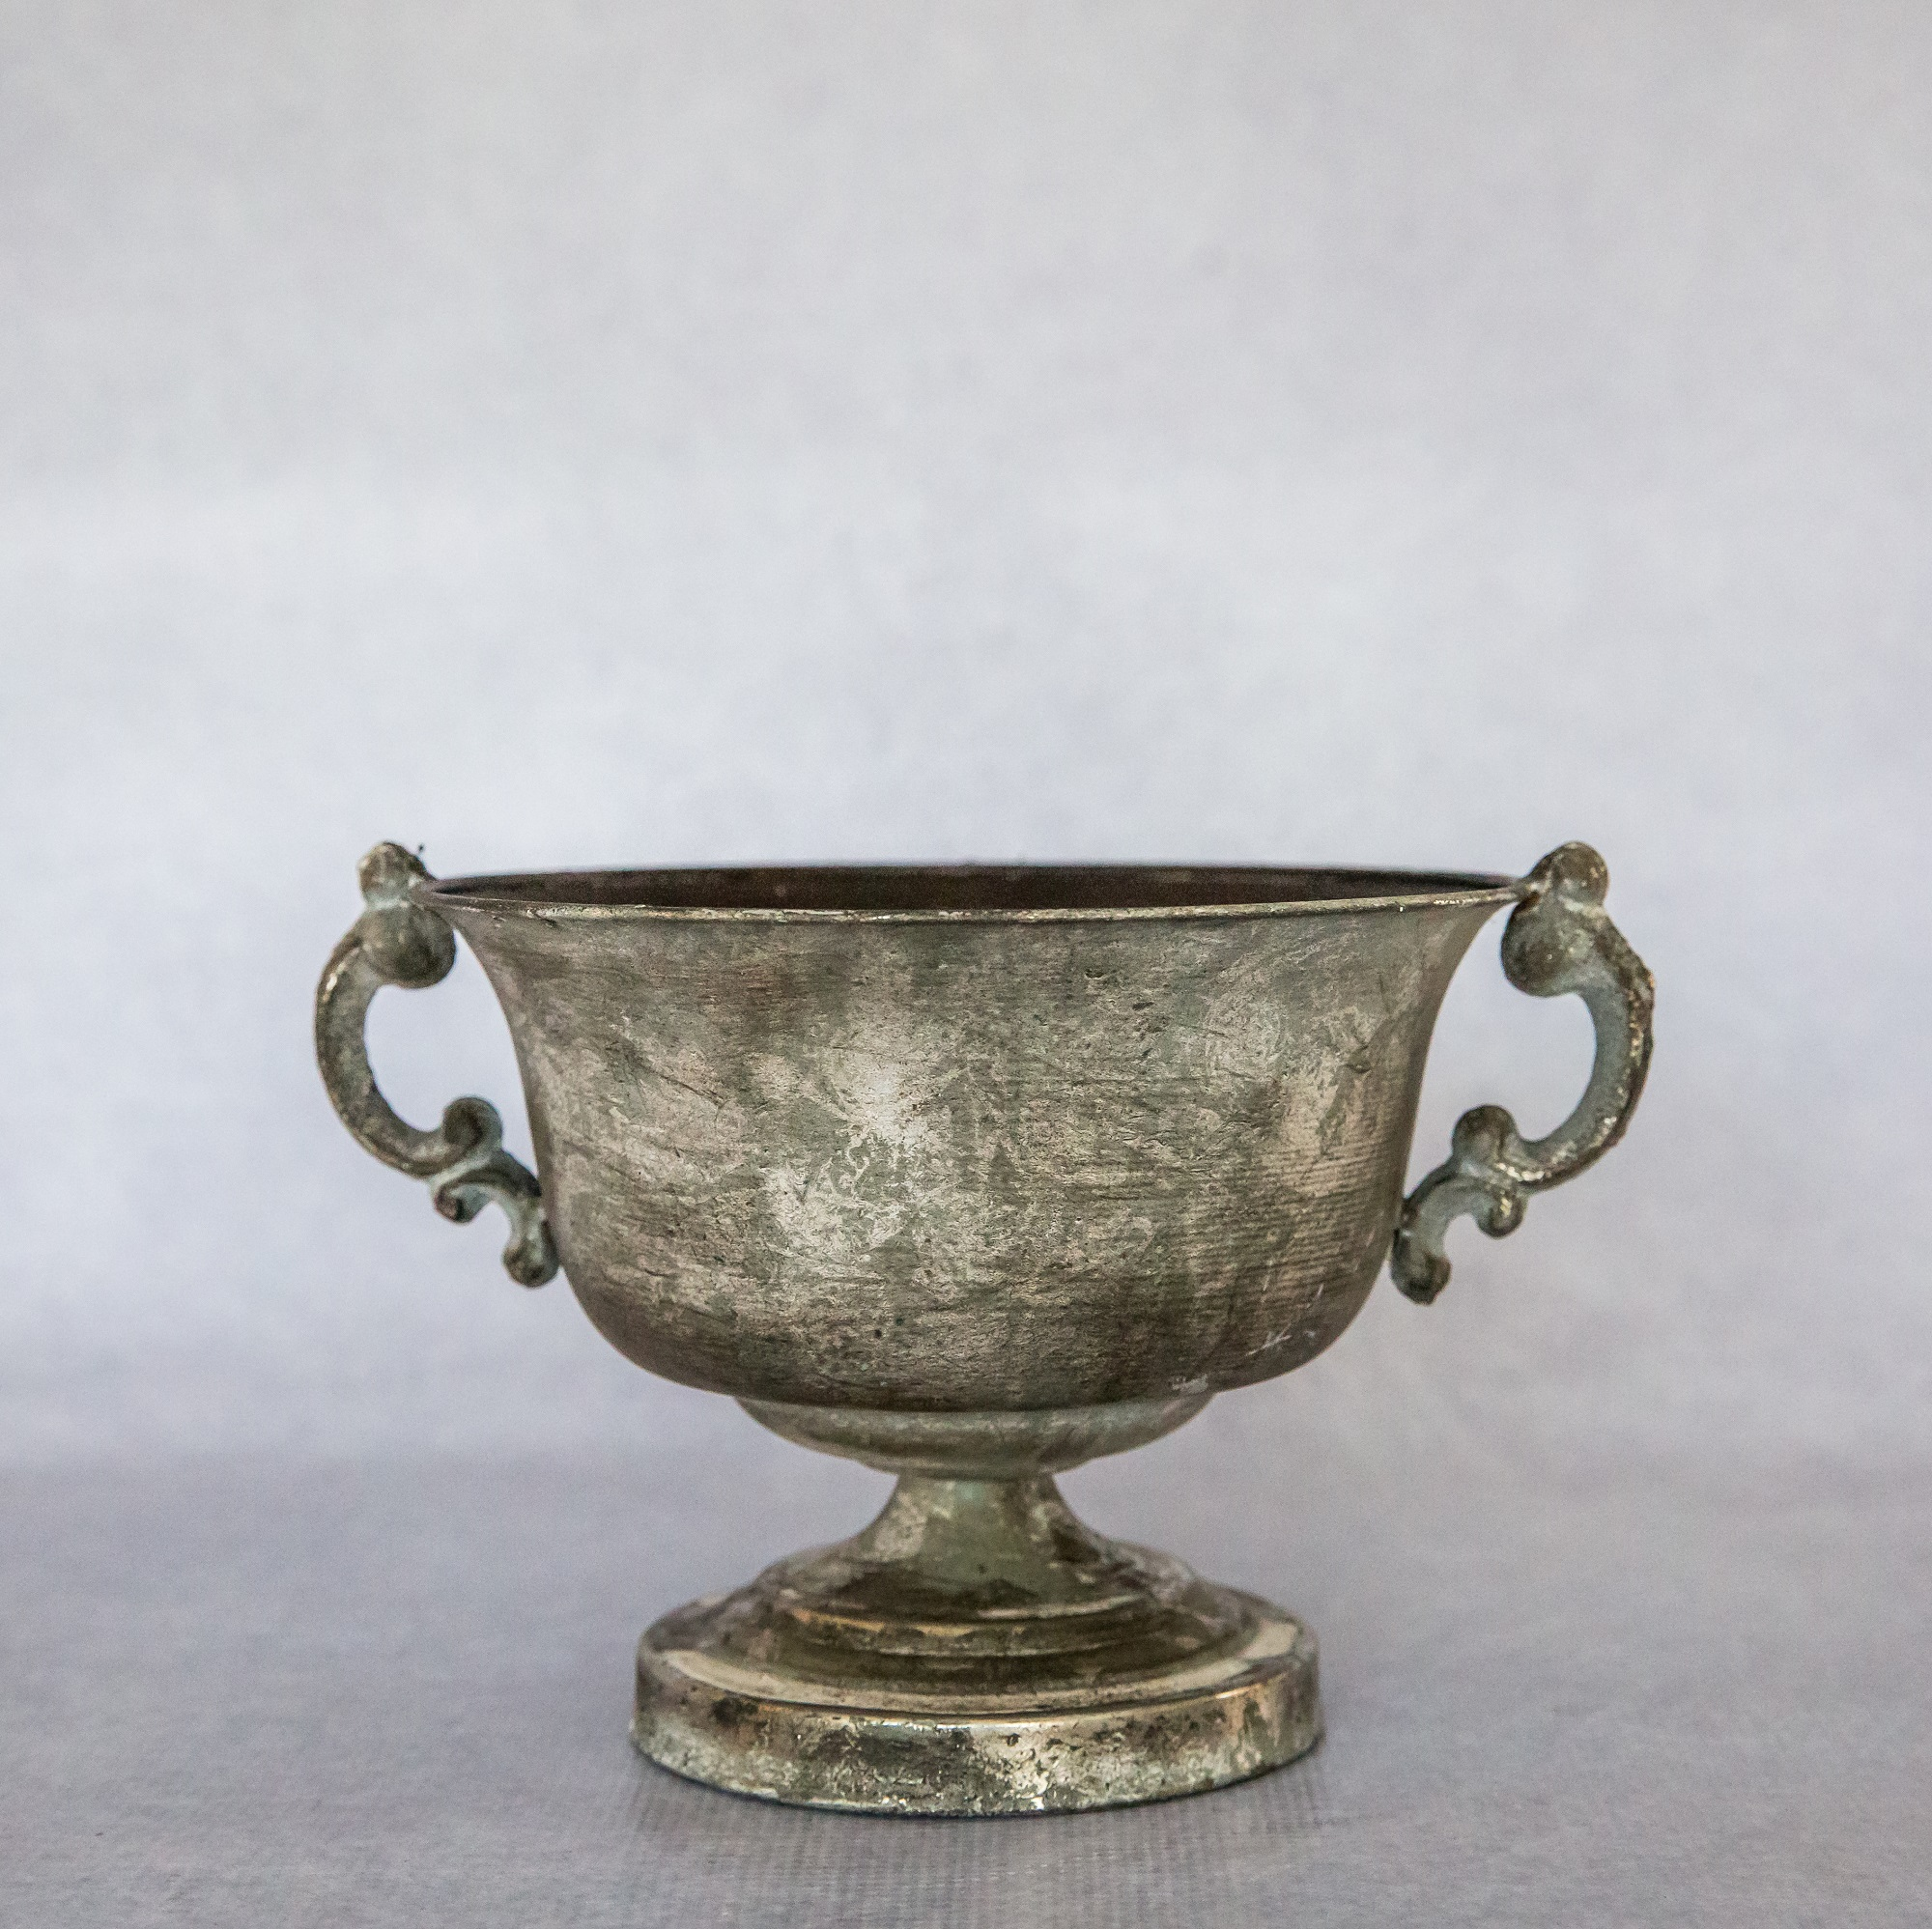 Antique Silver Trophy Footed Bowl Flamboijant Decor Hire